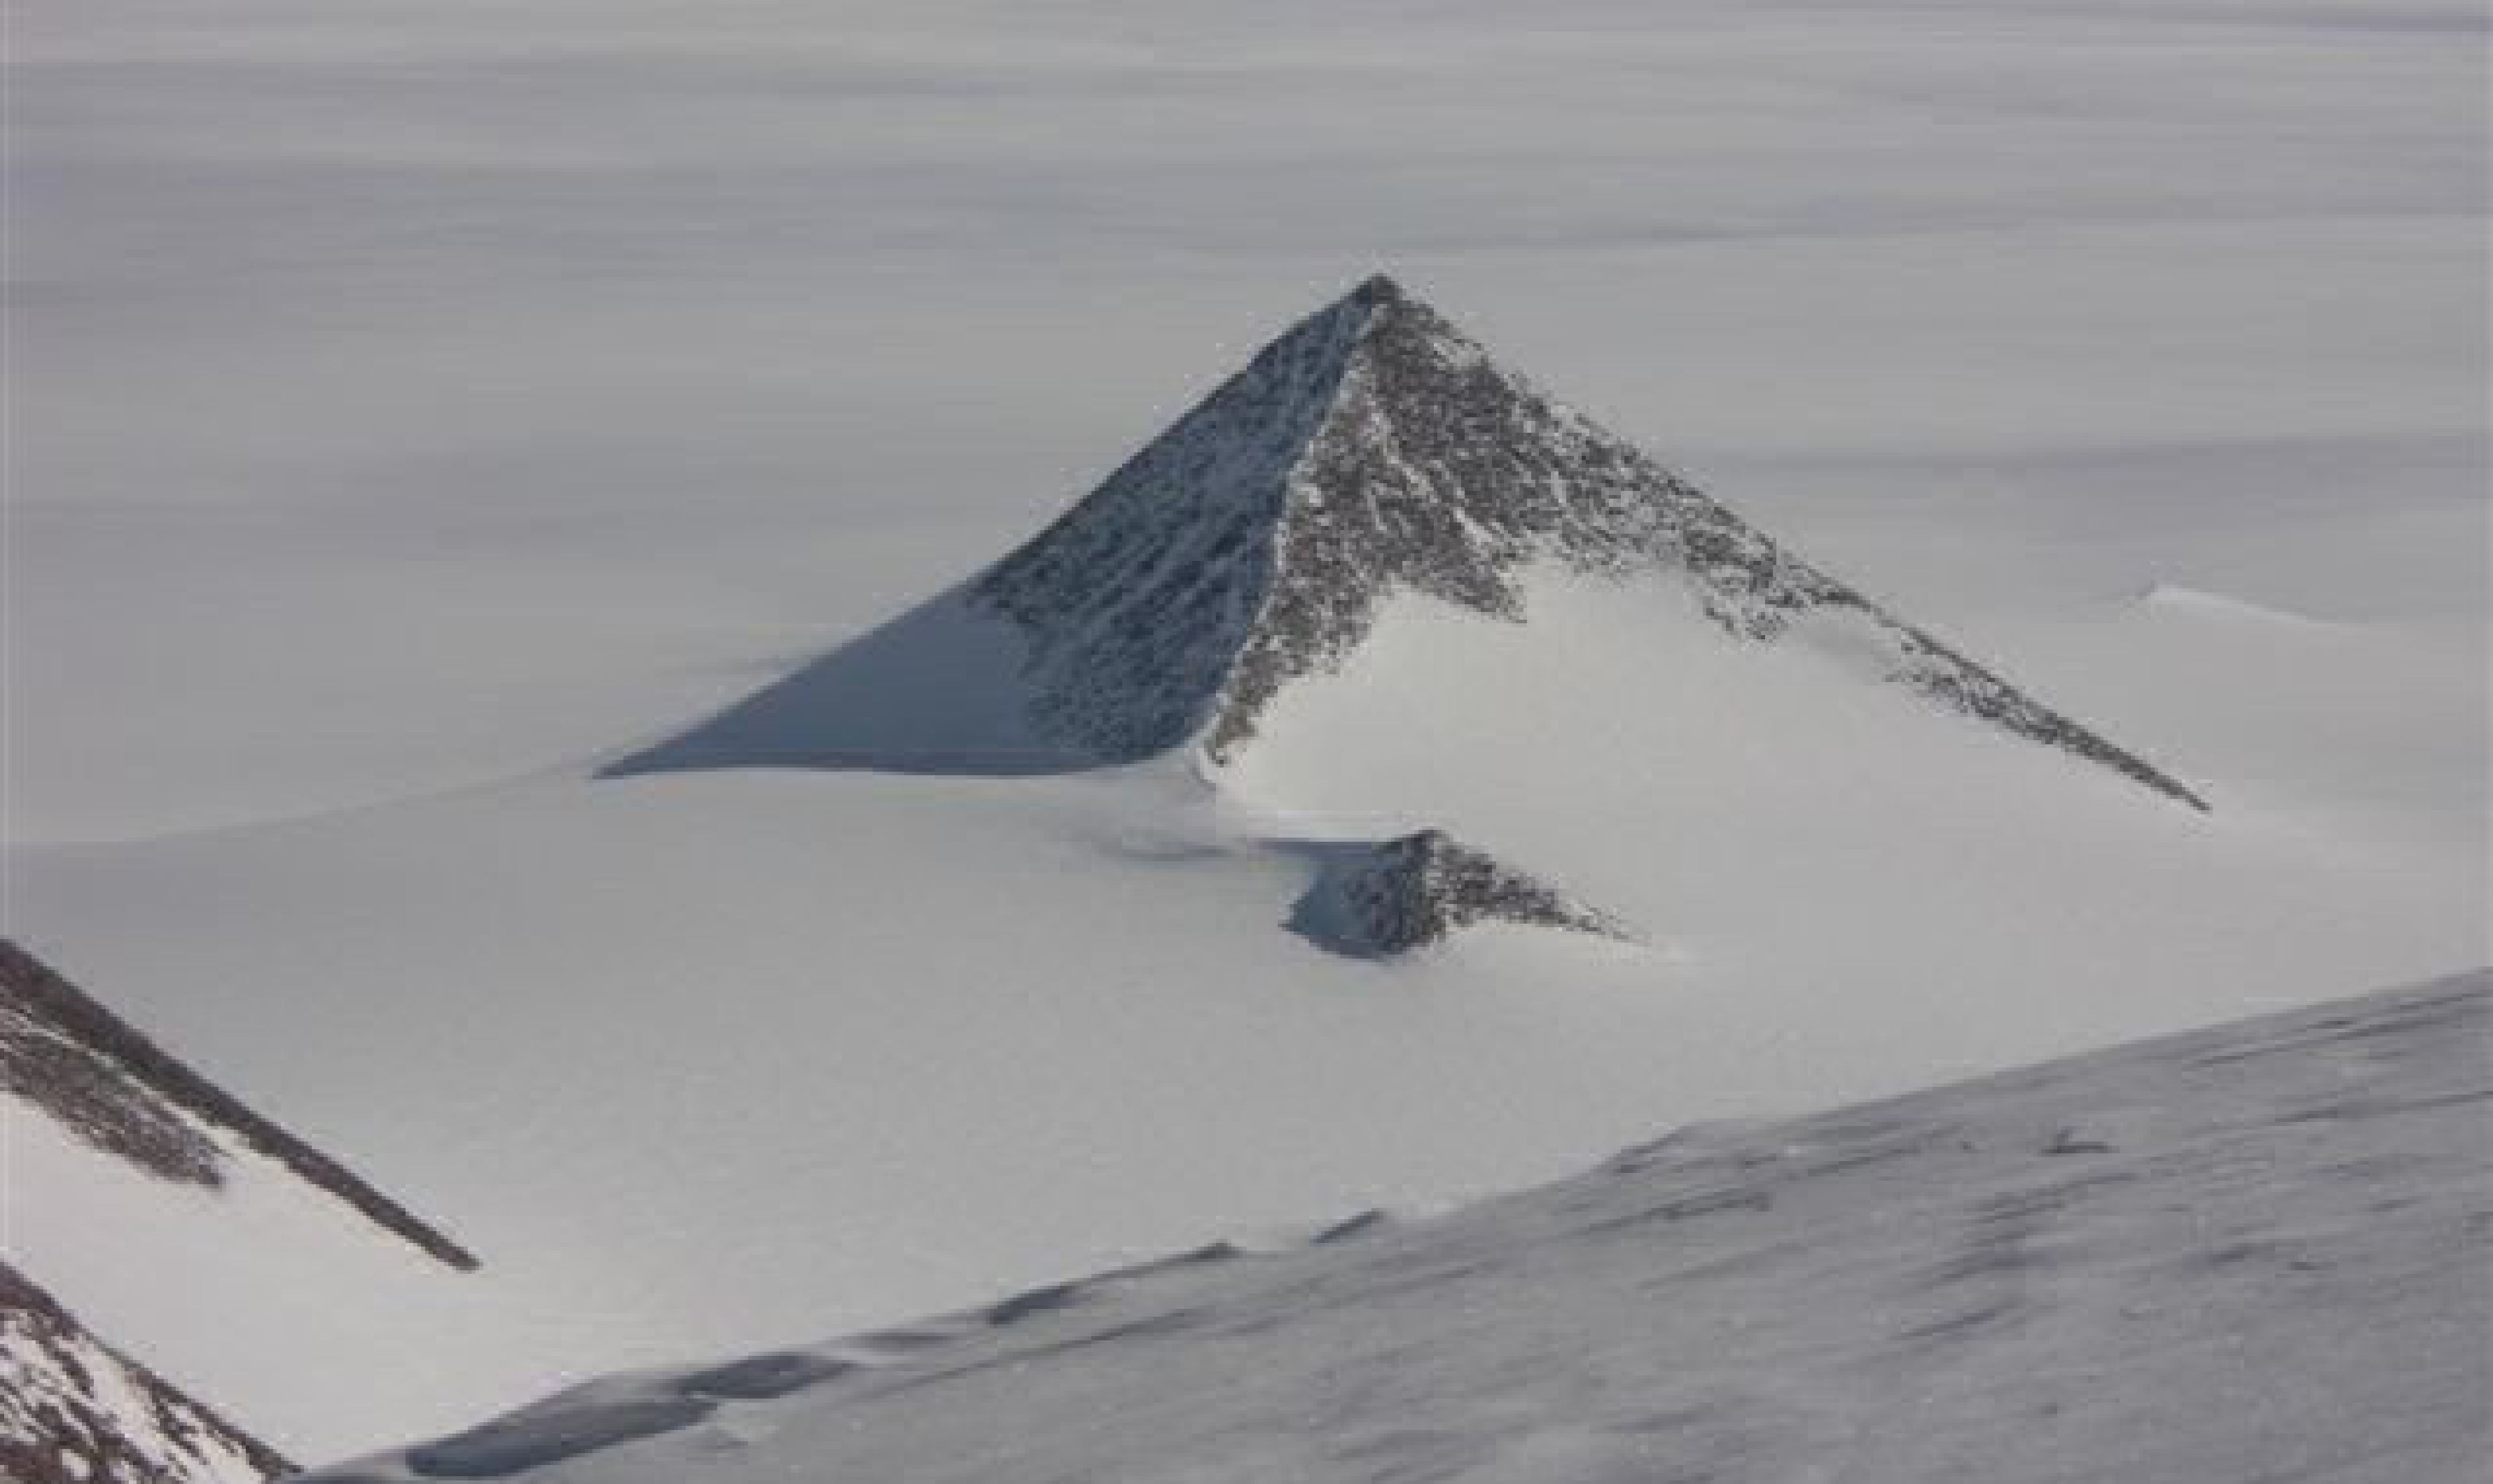 pyramid found in Antarctica